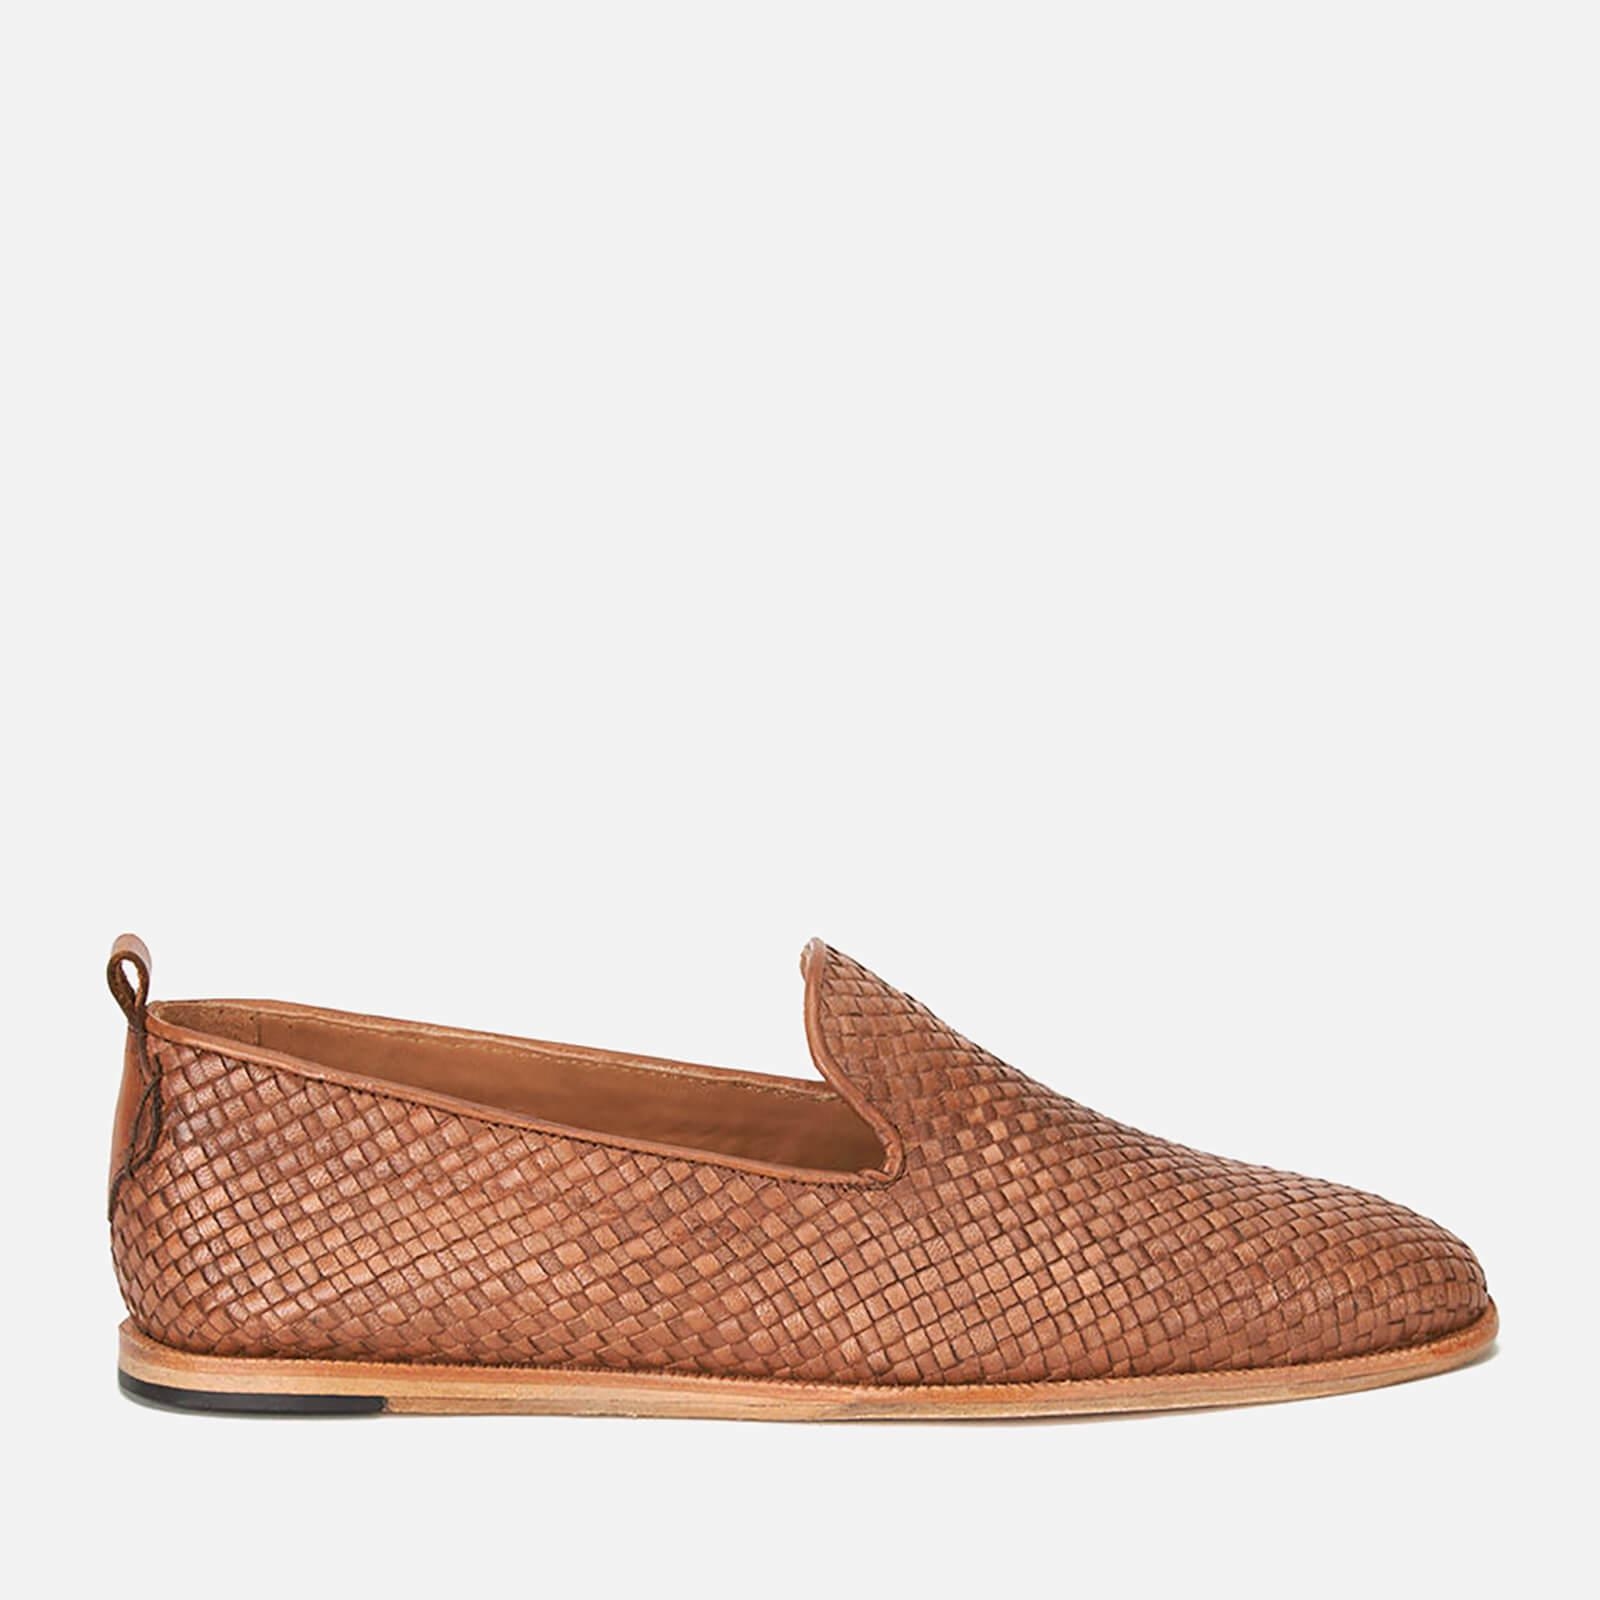 e6b11901485247 Lyst - H by Hudson Men s Ipanema Weave Slip On Leather Shoes in ...